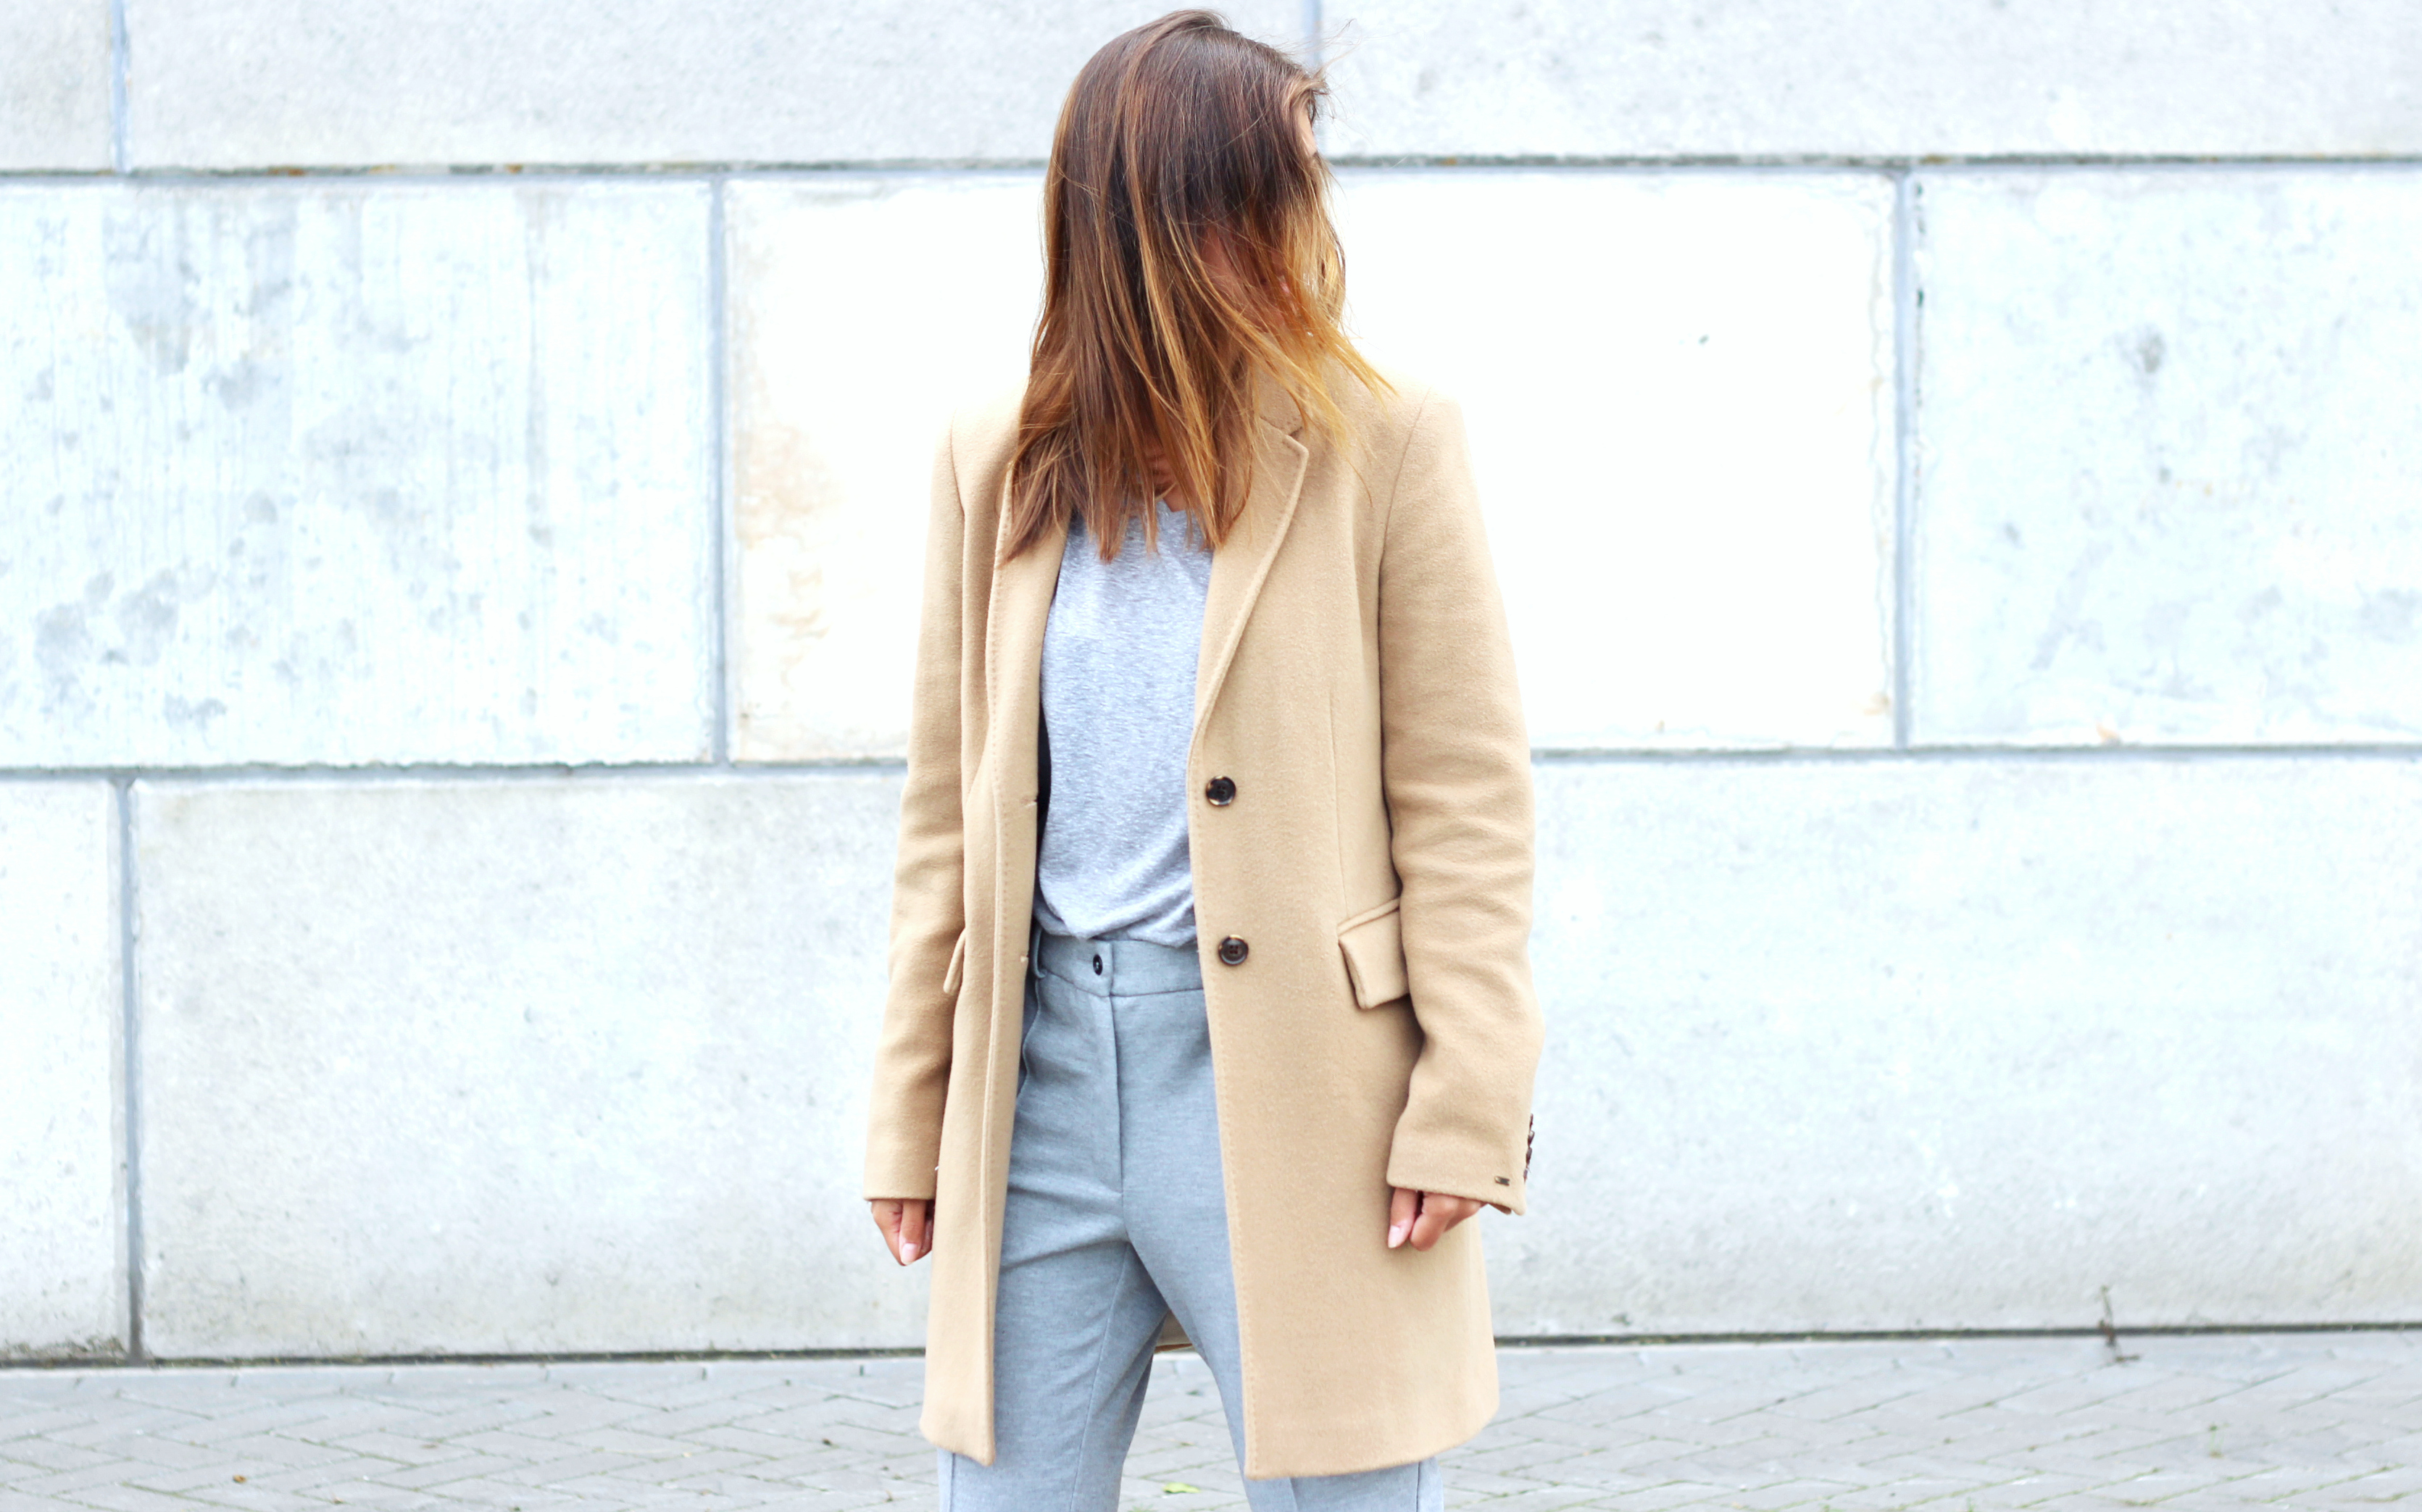 Grey on grey camel coat outfit